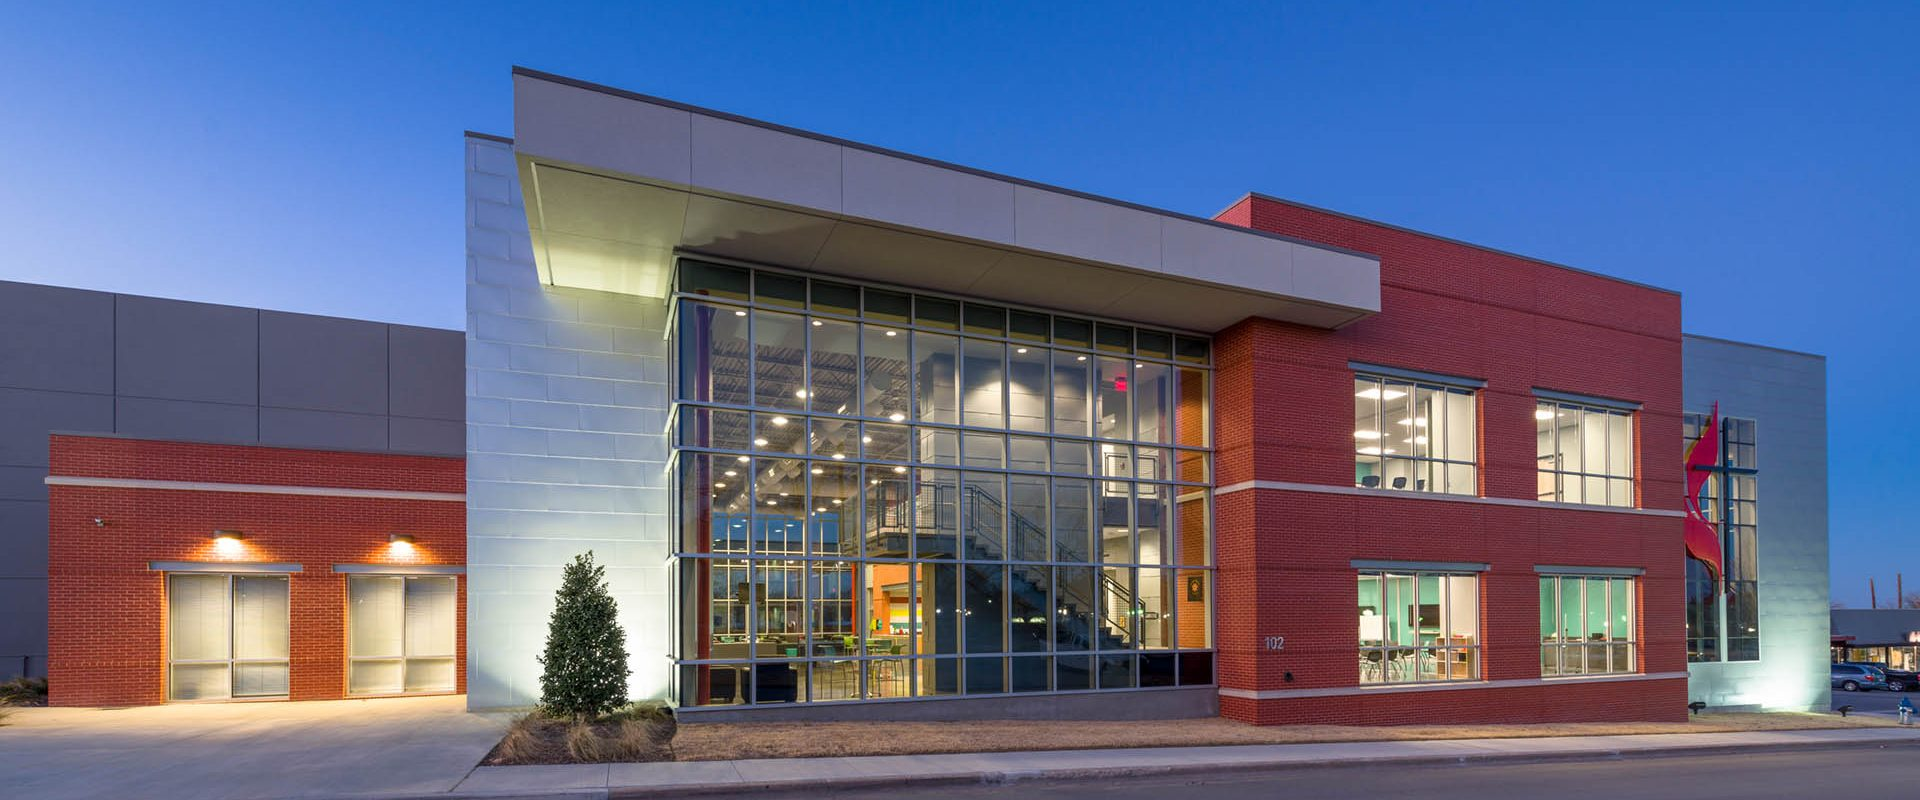 First United Methodist Church youth center for HH Architects